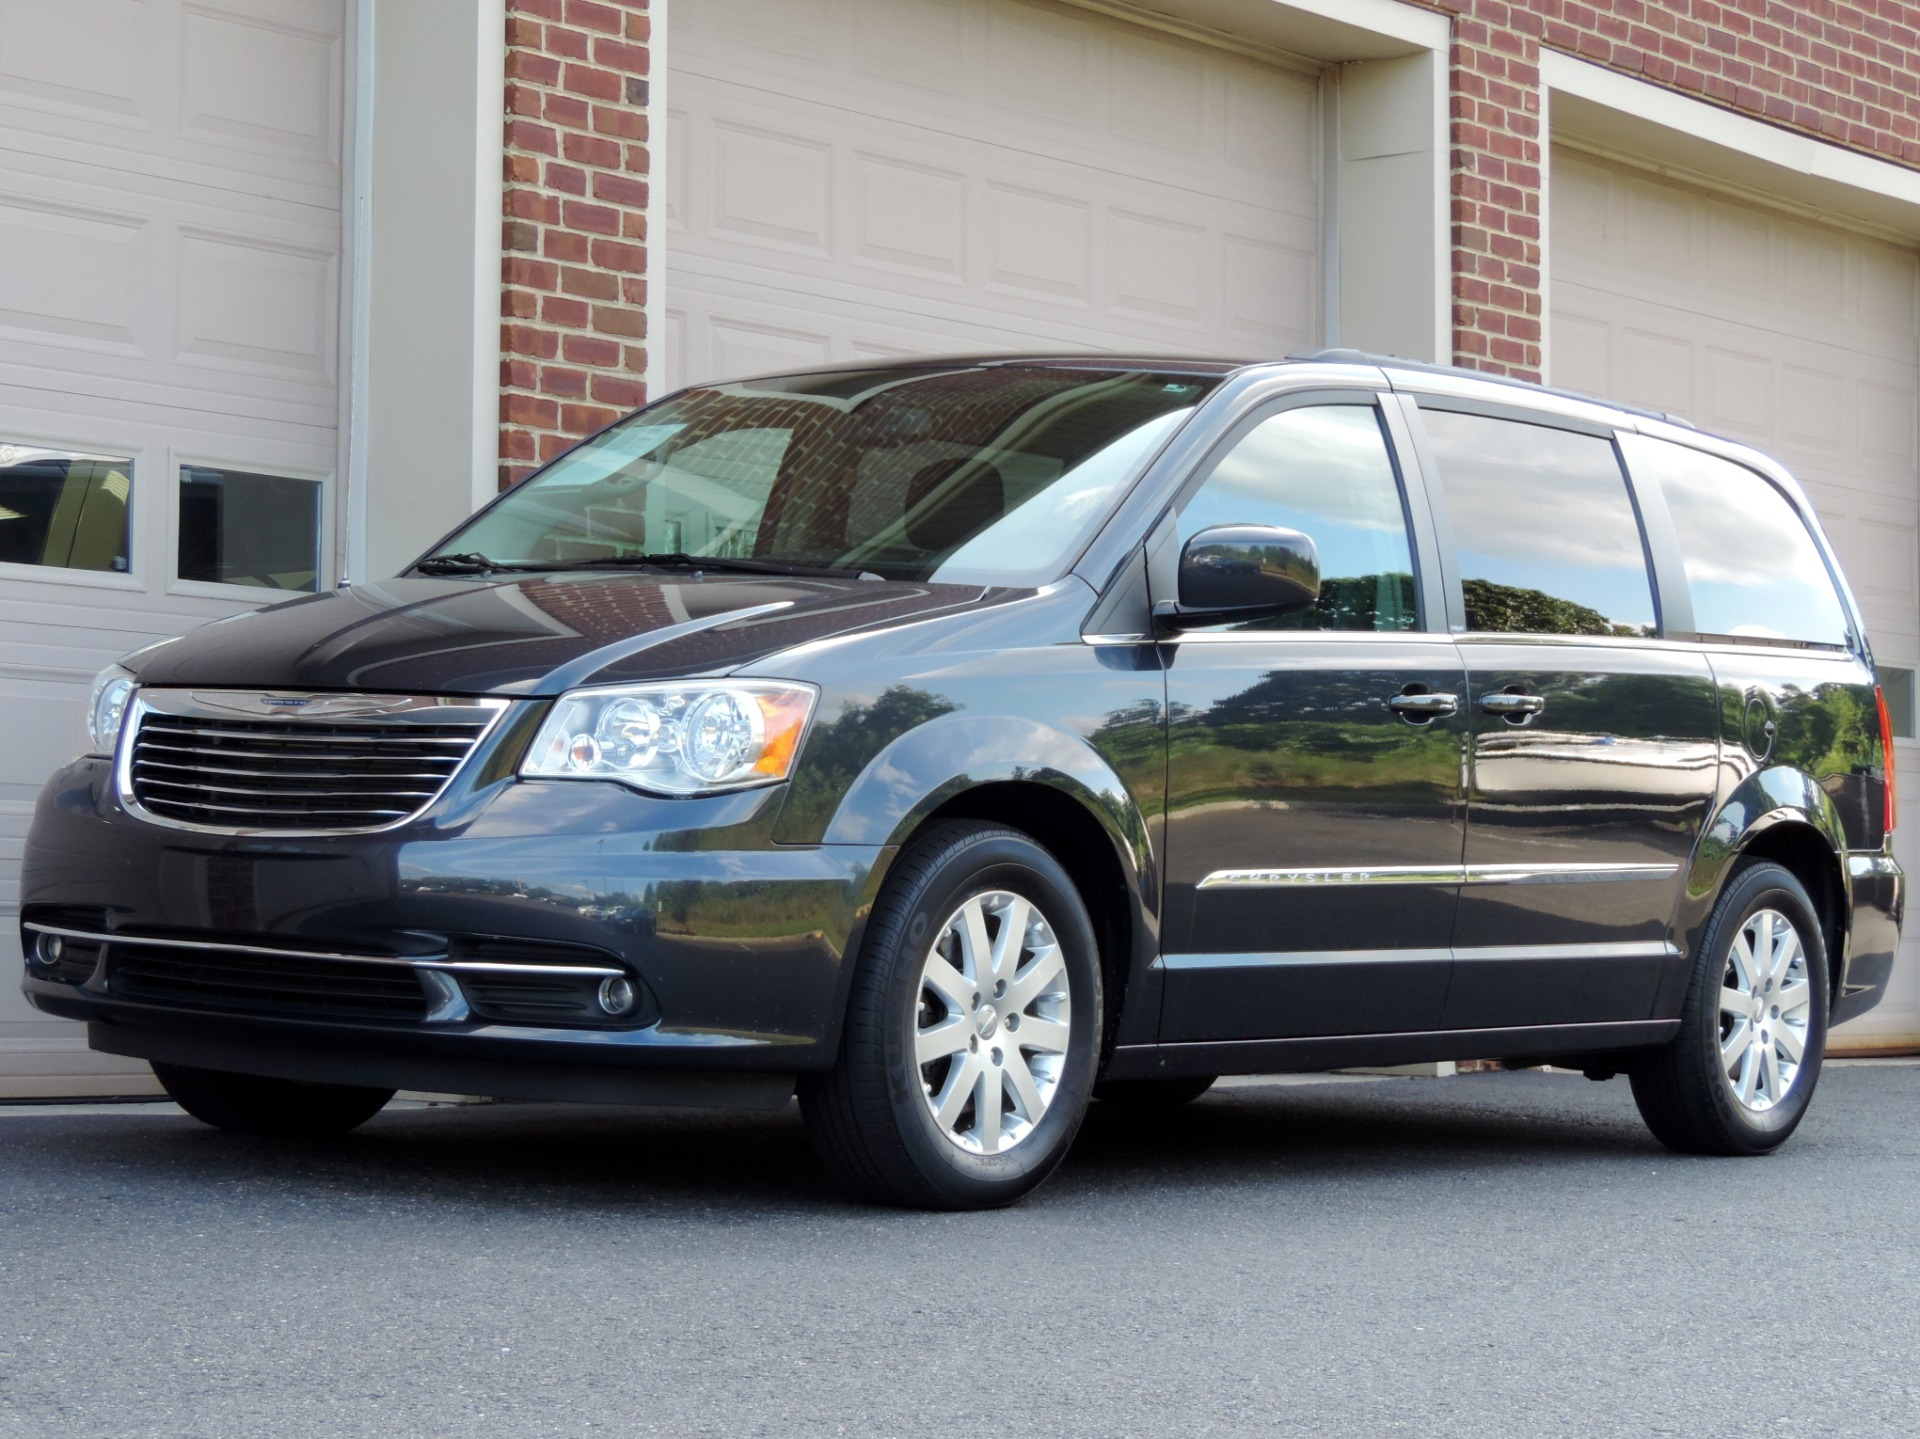 Used Cars For Sale Nj >> 2014 Chrysler Town and Country Touring Stock # 229453 for sale near Edgewater Park, NJ   NJ ...